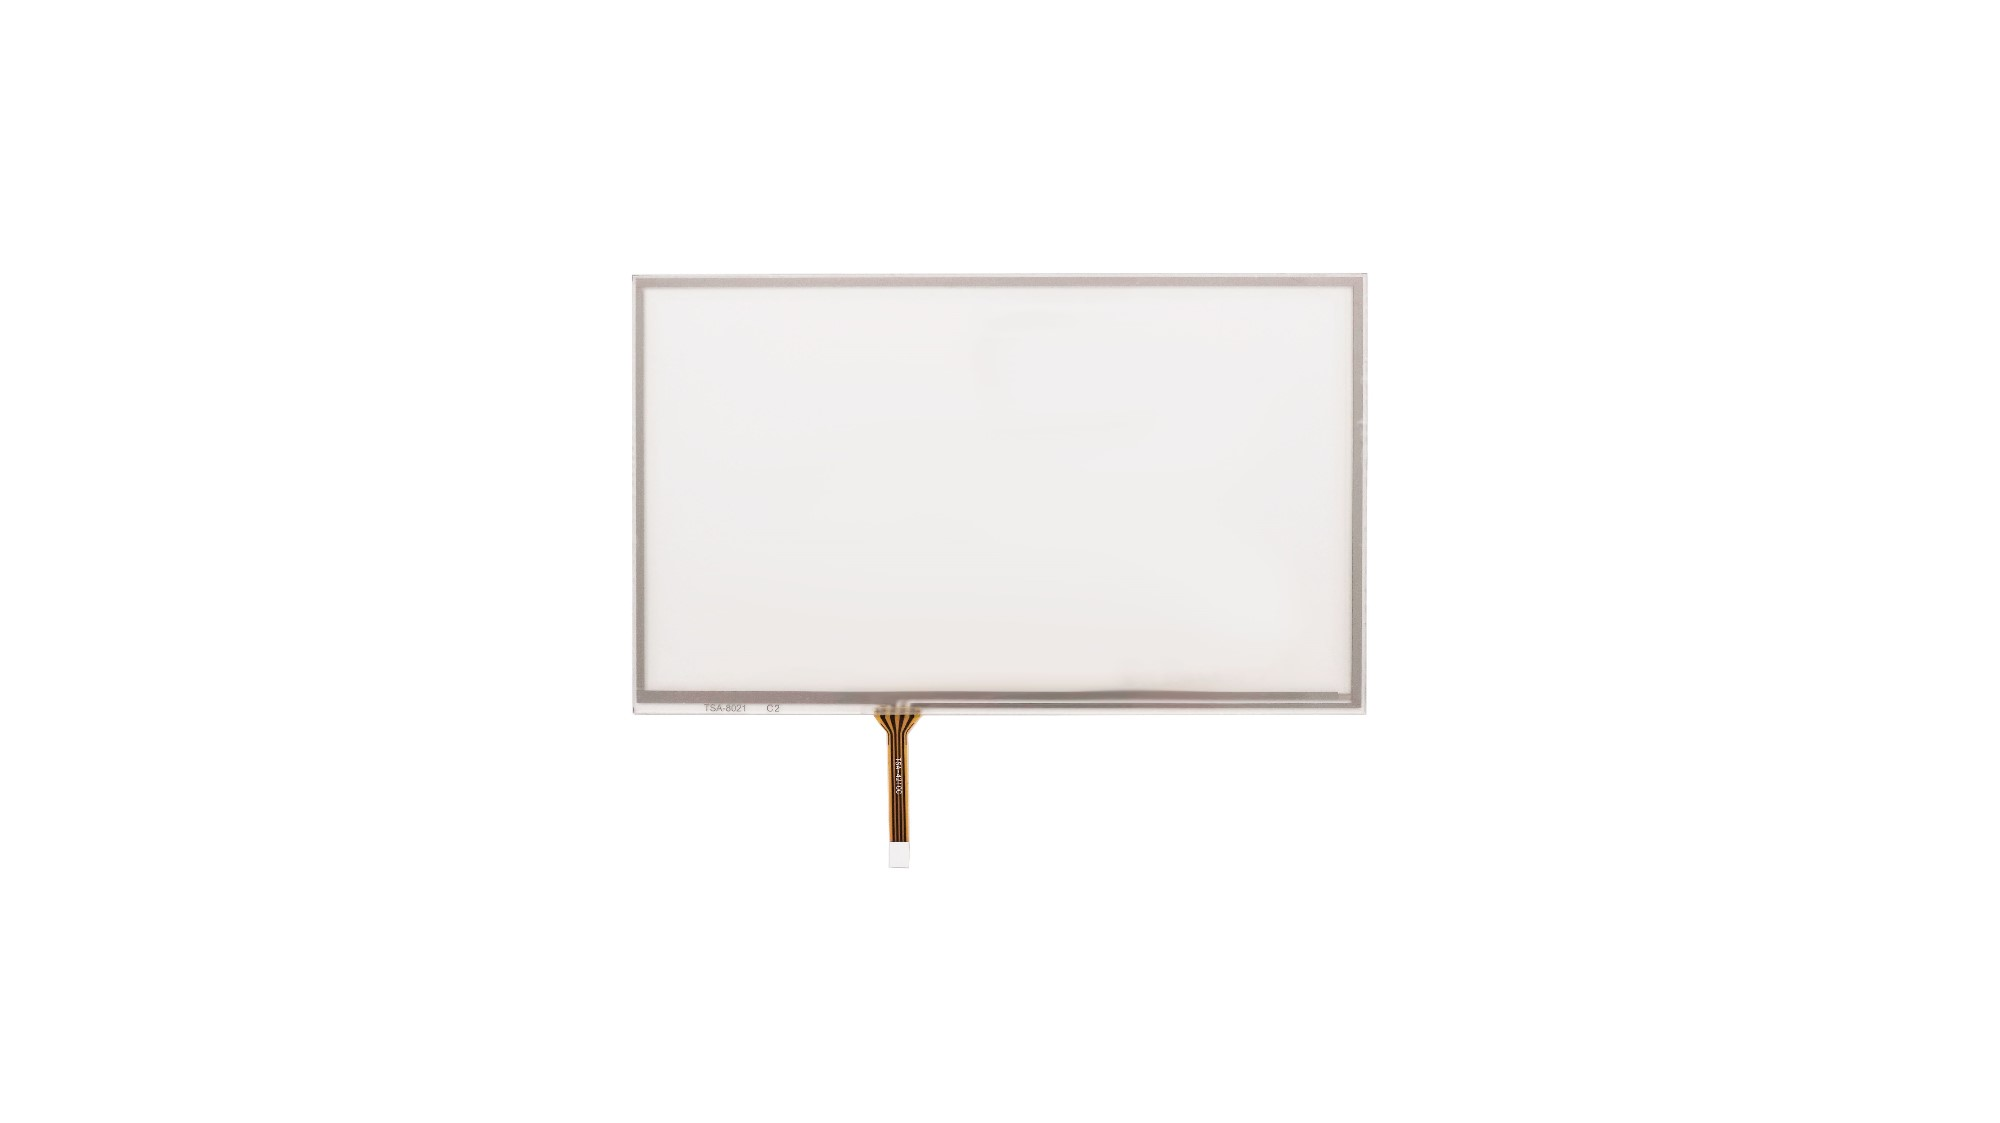 Sensitive 4wire 8.0 inch Resistive Touch Panel